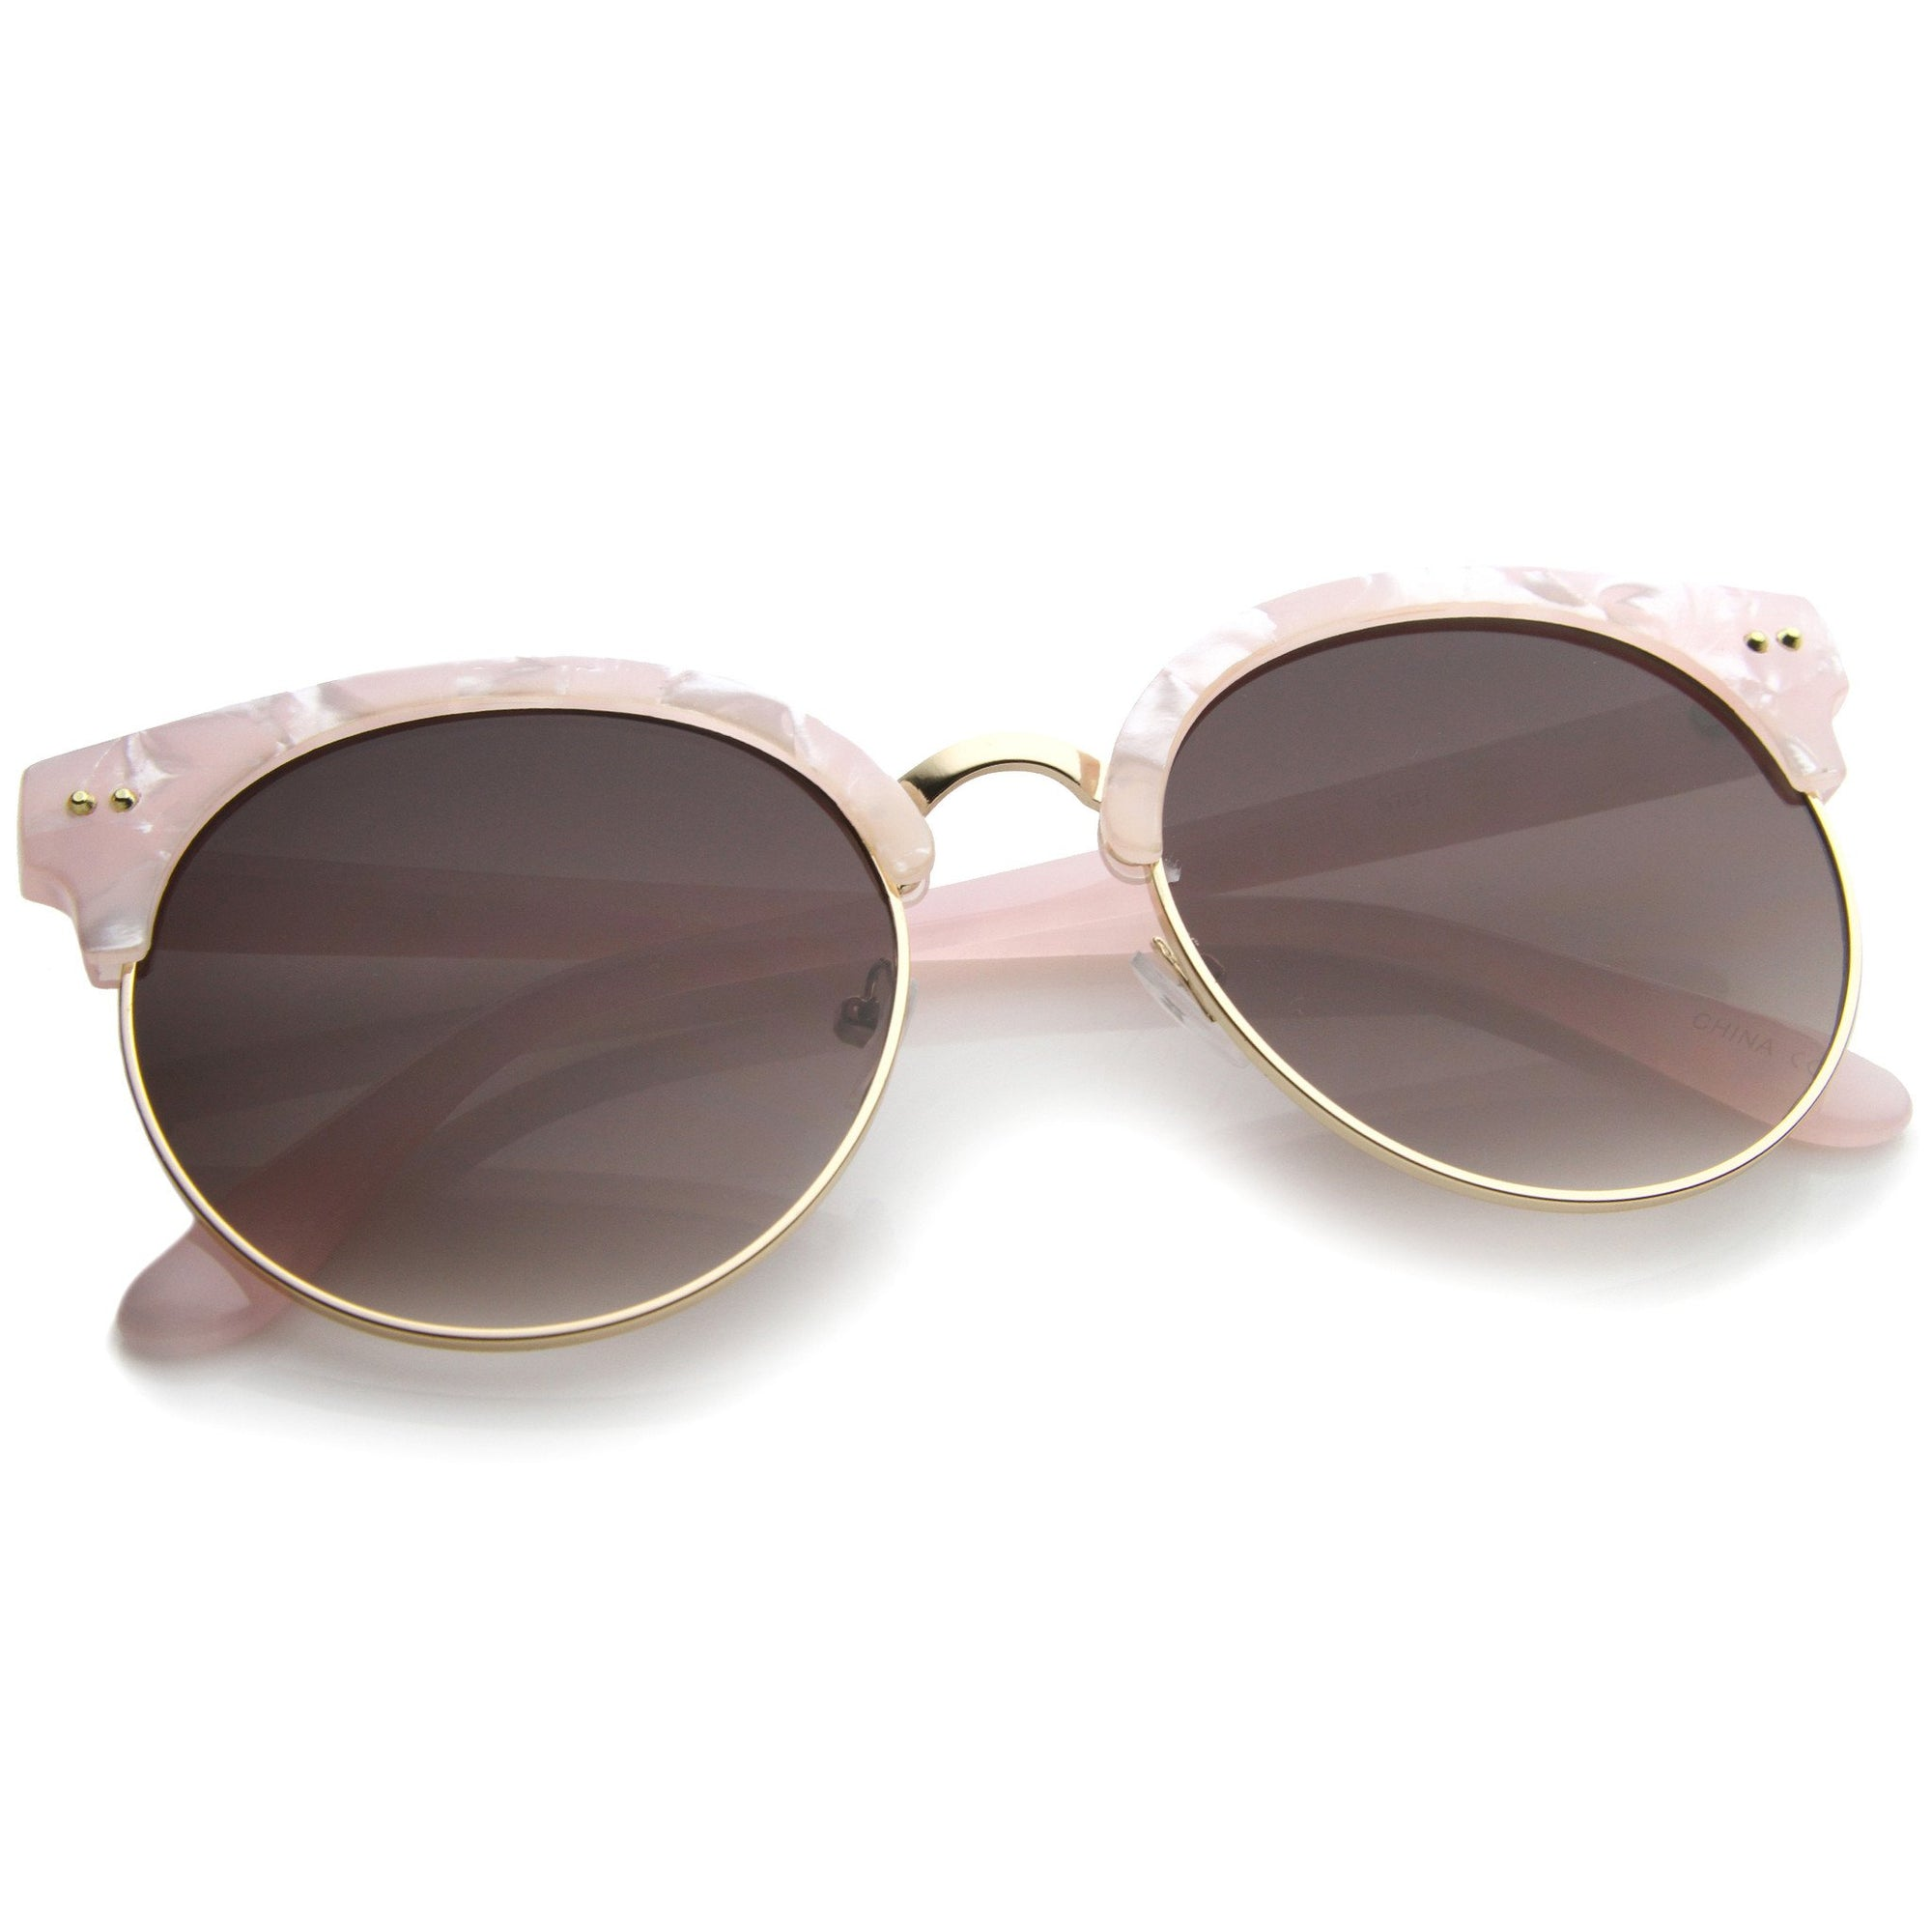 69a50d0e86866 ... Oversize Women s Marble Half Frame Round Sunglasses A243 · Pink Gold  Lavender · Pink Gold Lavender · Pink Gold Lavender · Pink Gold Lavender